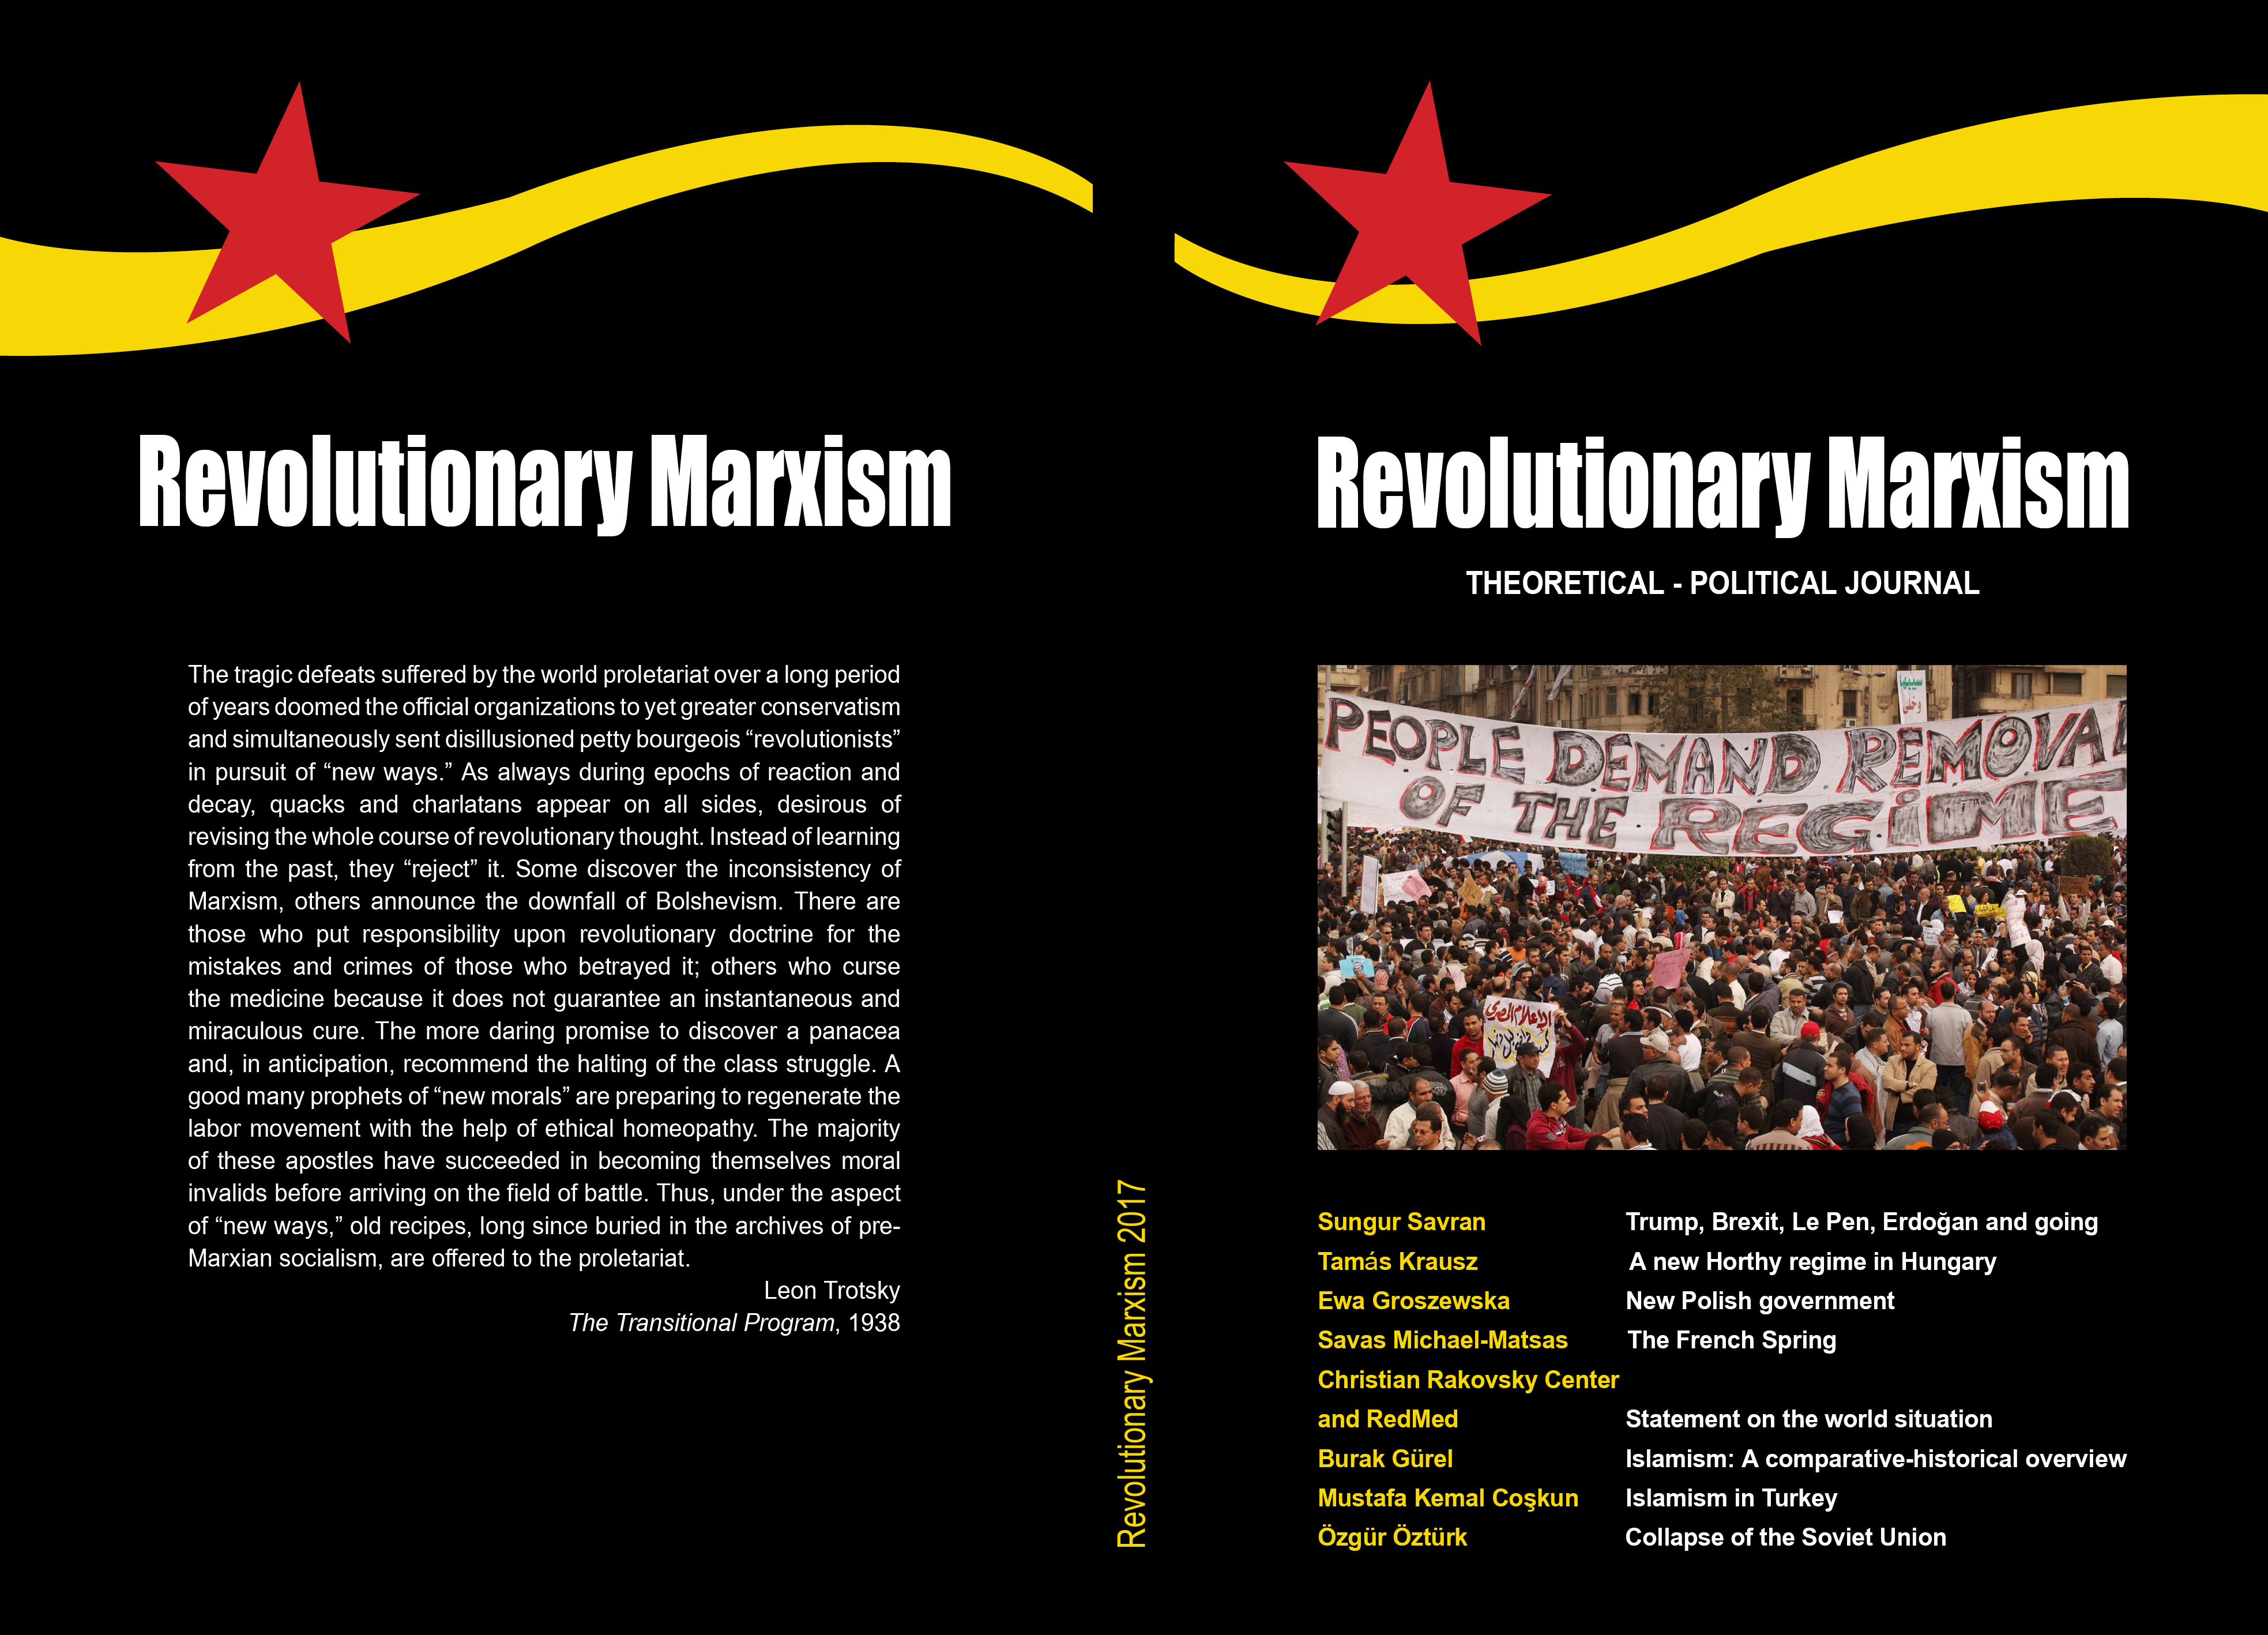 Revolutionary Marxismis a brand new journal of theory with quite a long history. The irony derives from the fact that this journal is the English edition of a journal that has been published in Turkish for ten years. Devrimci Marksizm has now brought out